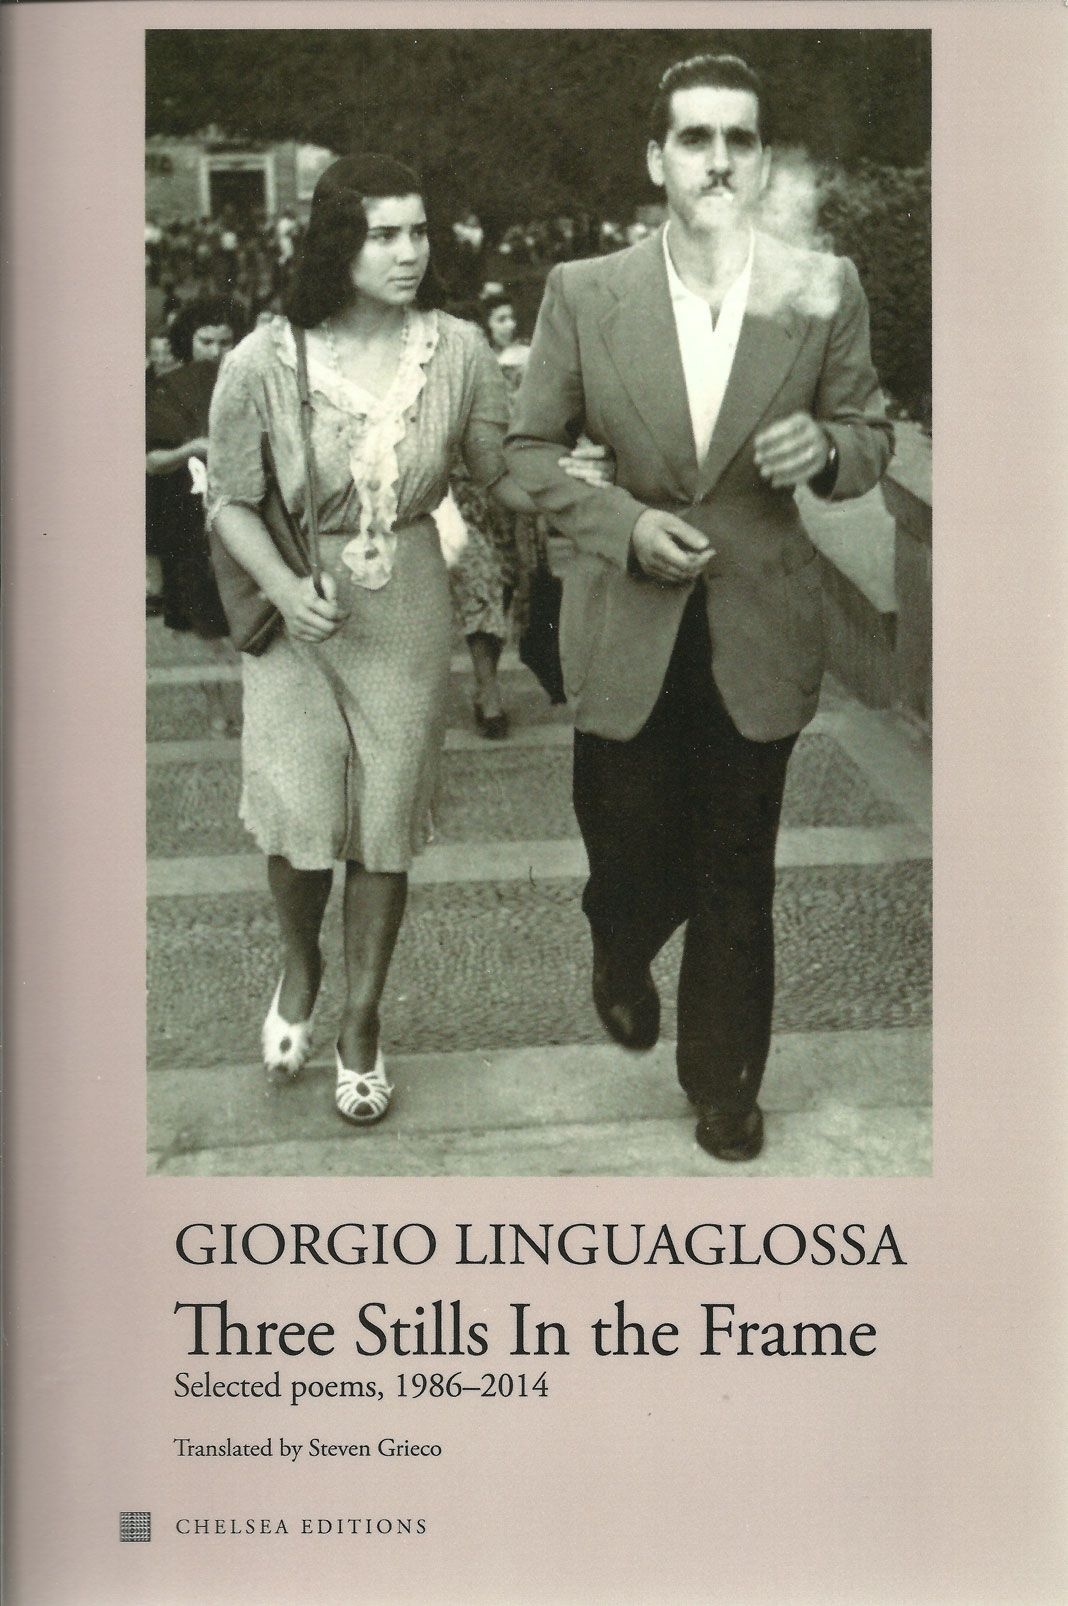 Giorgio-Linguaglossa-Three Stills In the Frame 2015